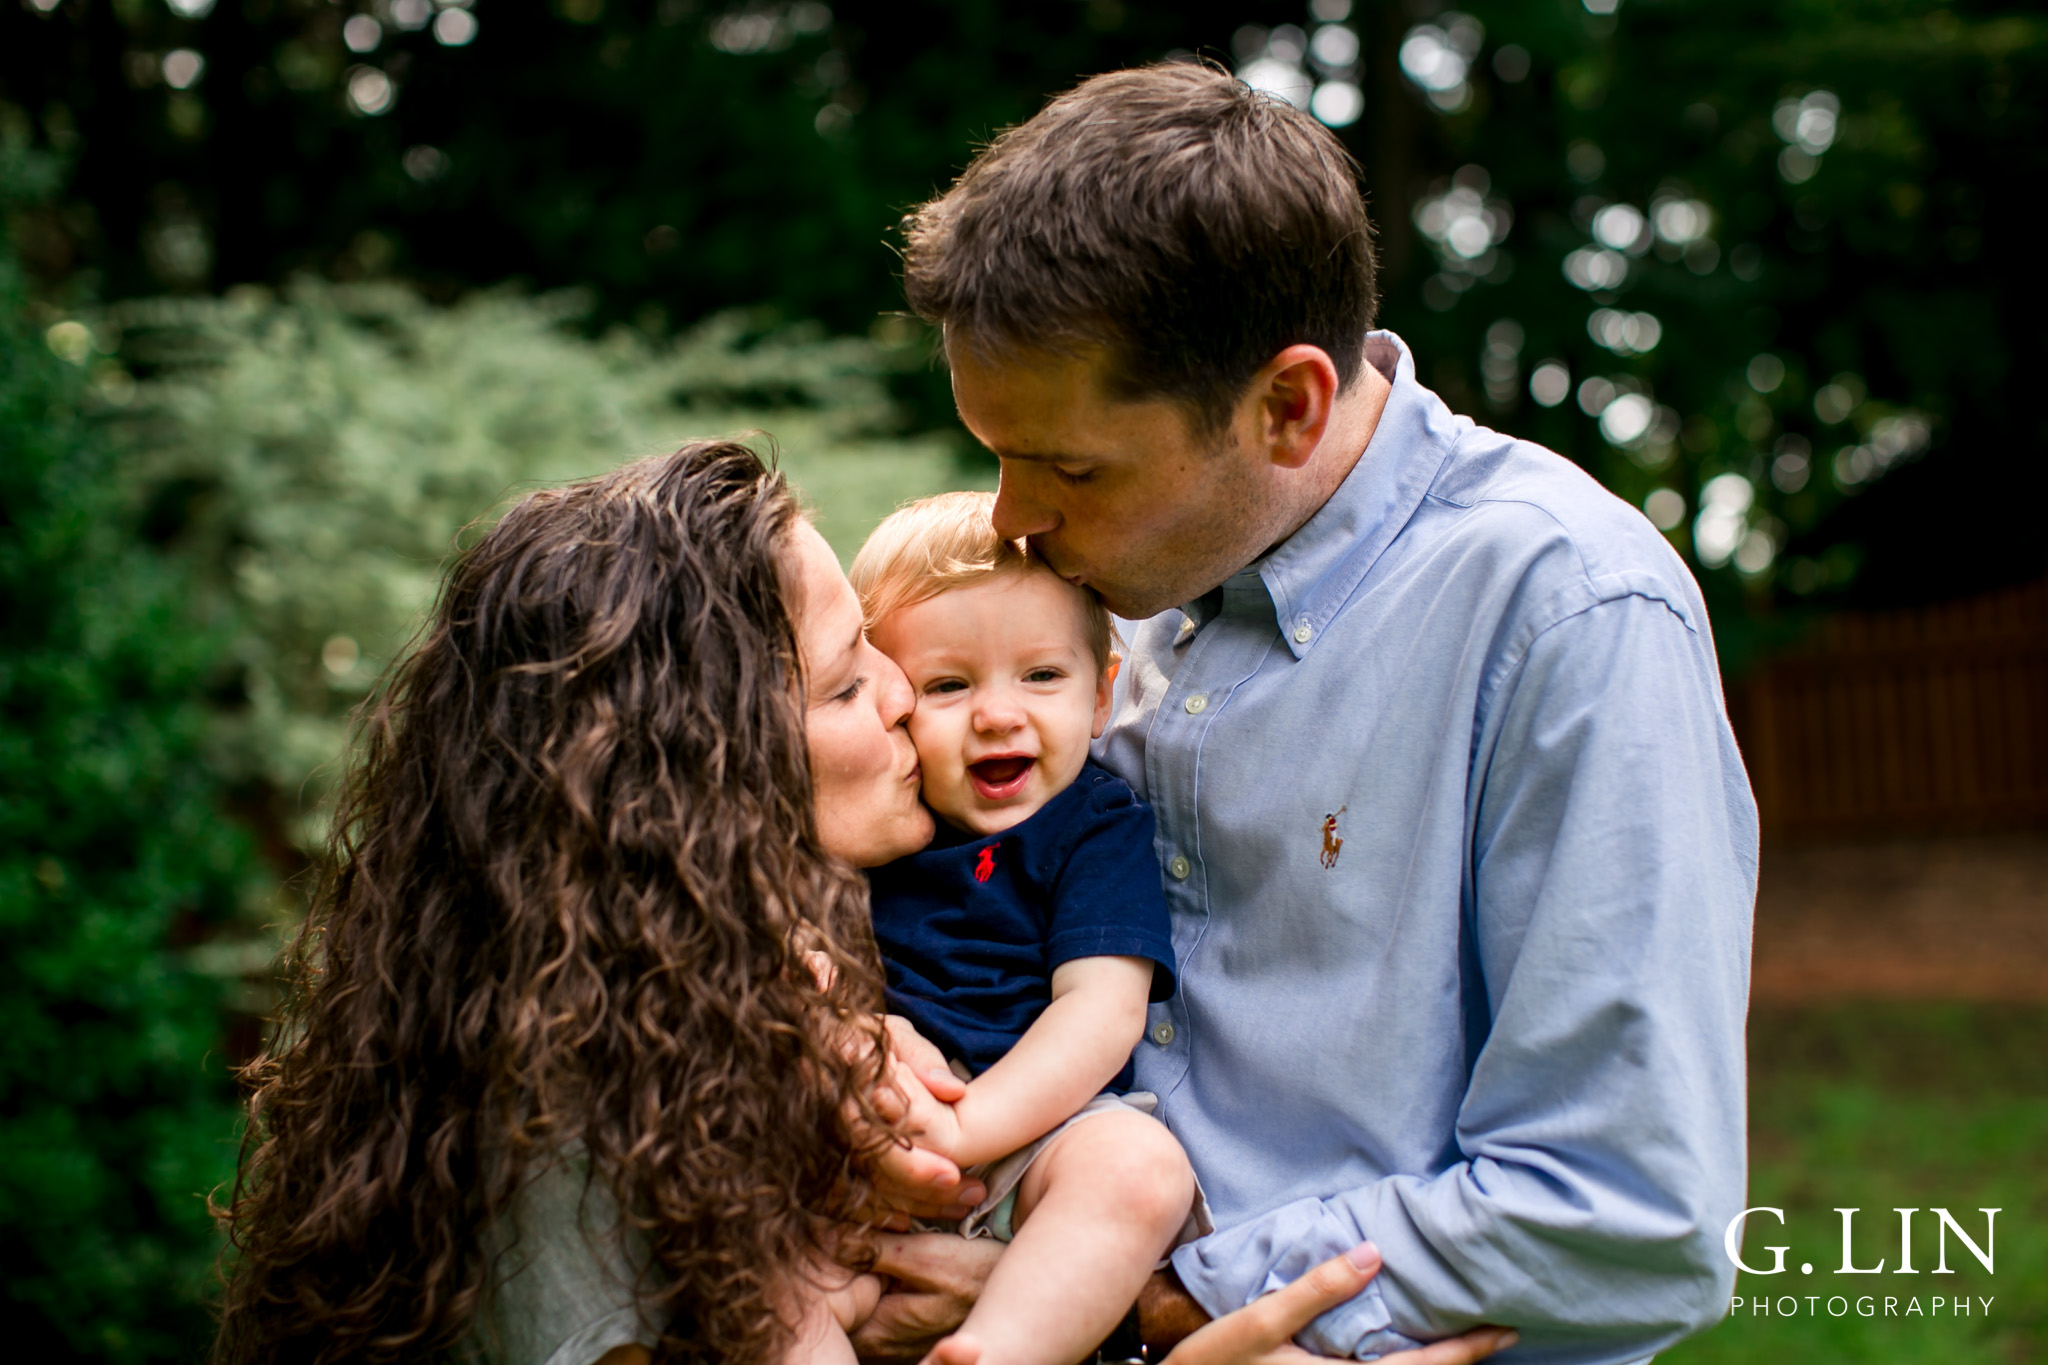 Raleigh Family Photographer | G. Lin Photography | Mom and Dad kissing baby on cheeks